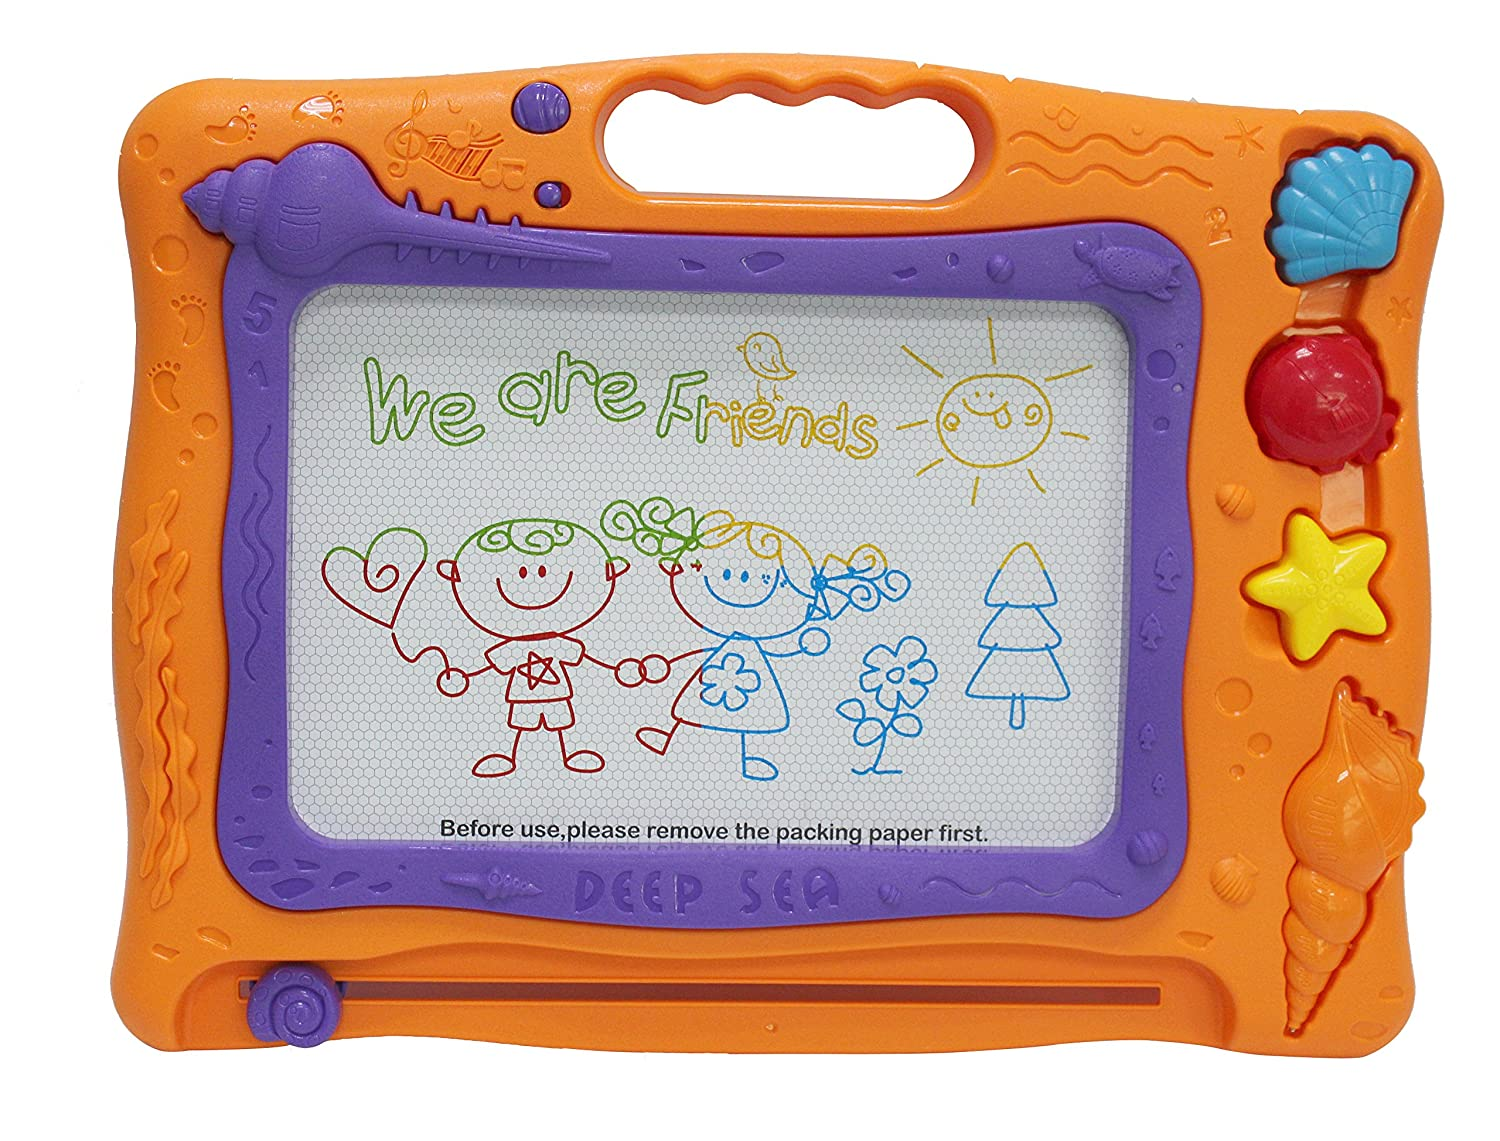 ACOPLAY Large Magnetic Doodle Sketch Board by Colorful Erasable Drawing Board - Perfect for Toddlers & Kids – Develops Drawing, Writing, and Playing Skills Etch a Sketch Montessori toys toddler toys